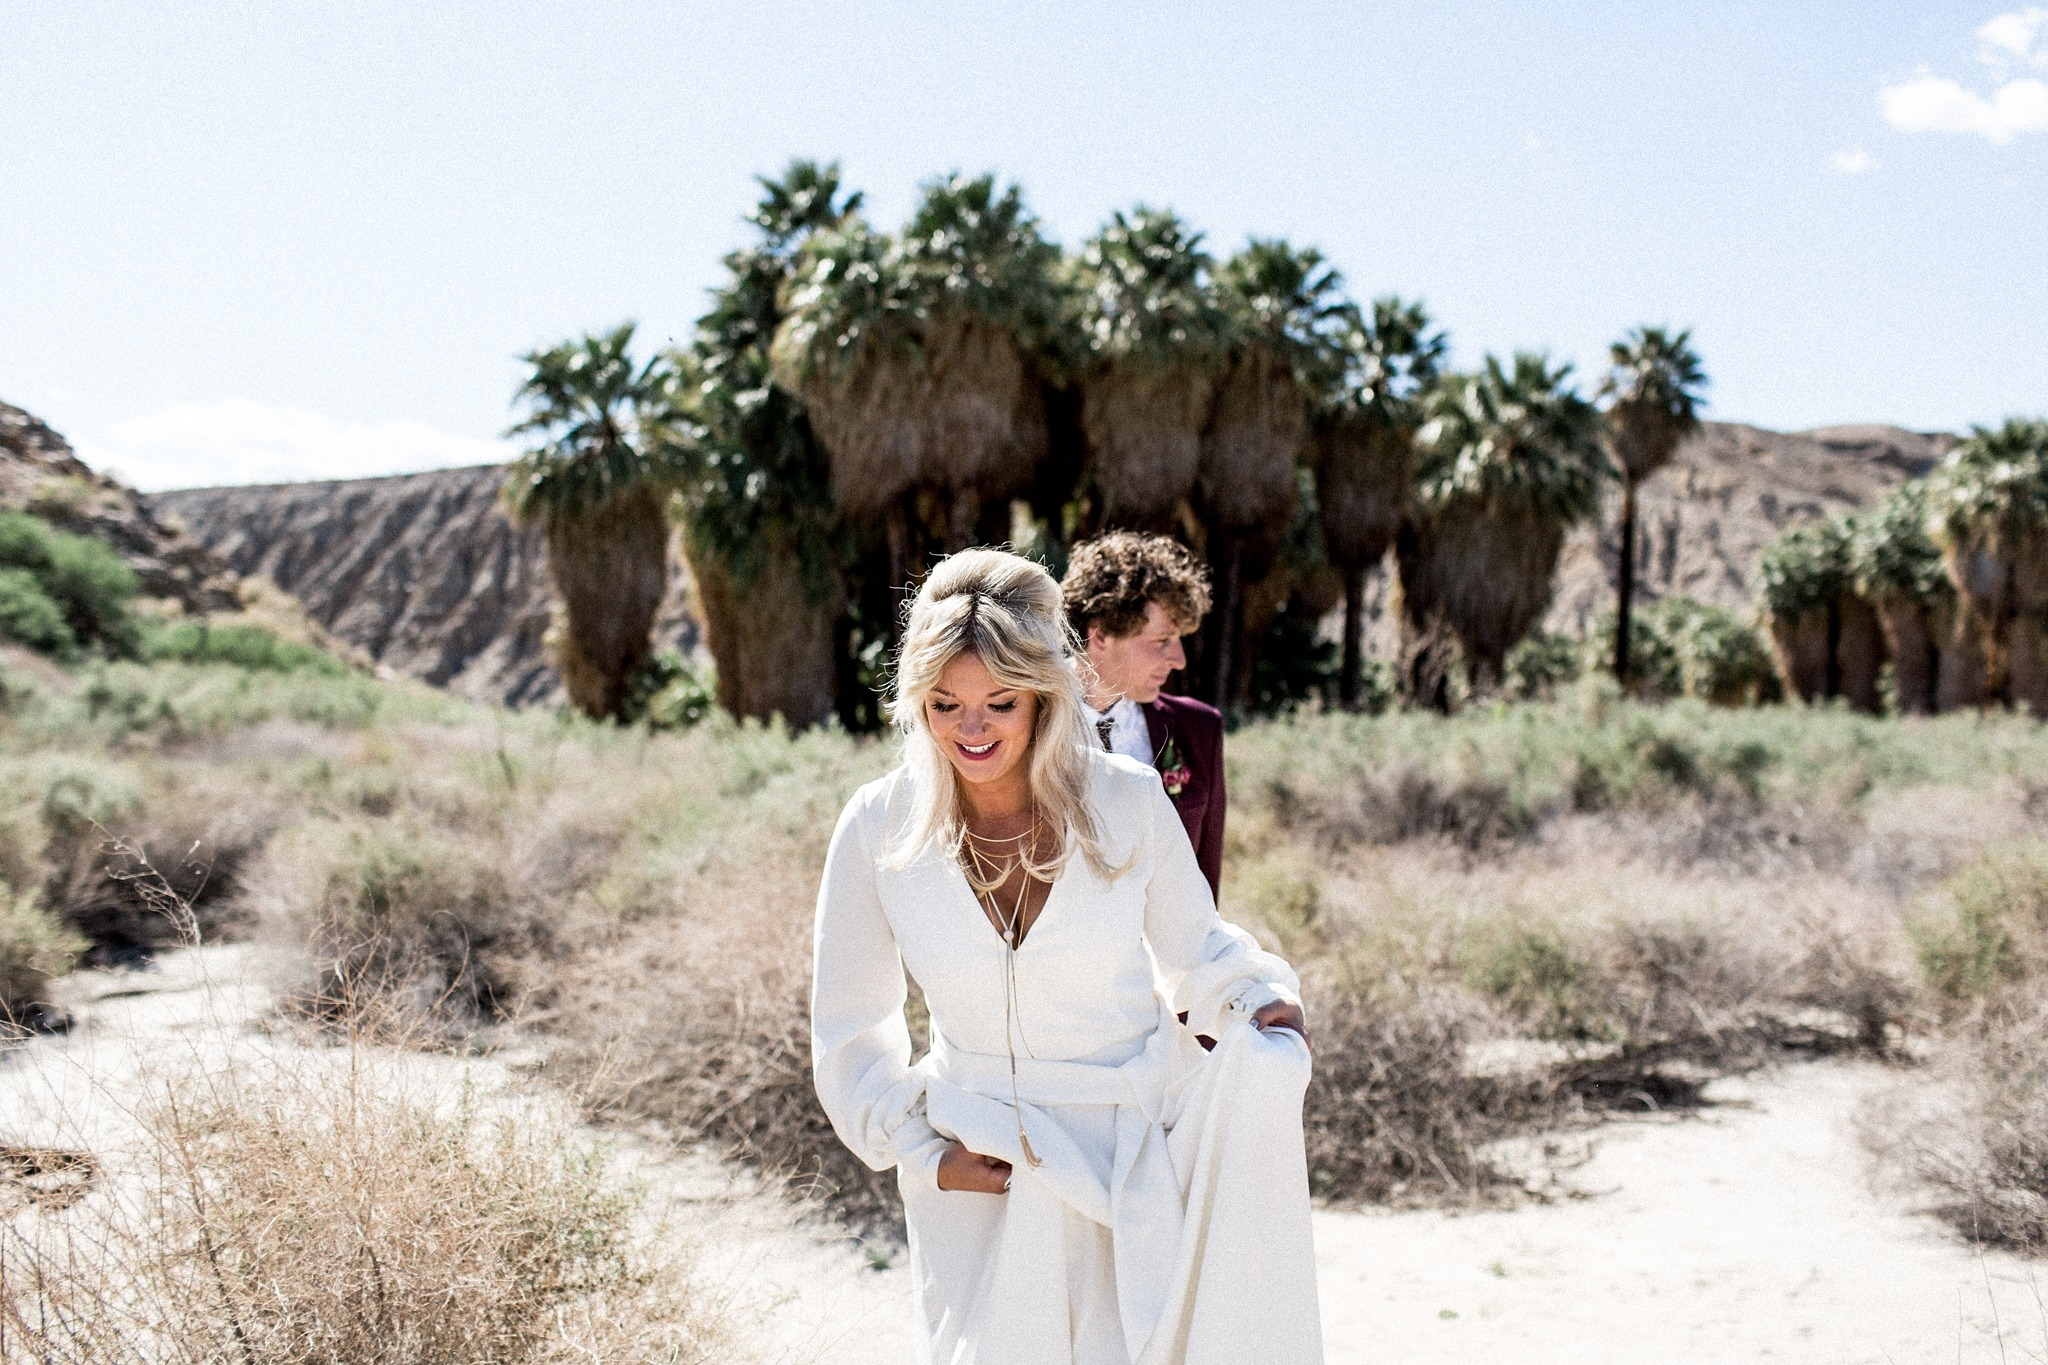 elopement-palm-springs-wedding-photographer-sarah-falugo_0029